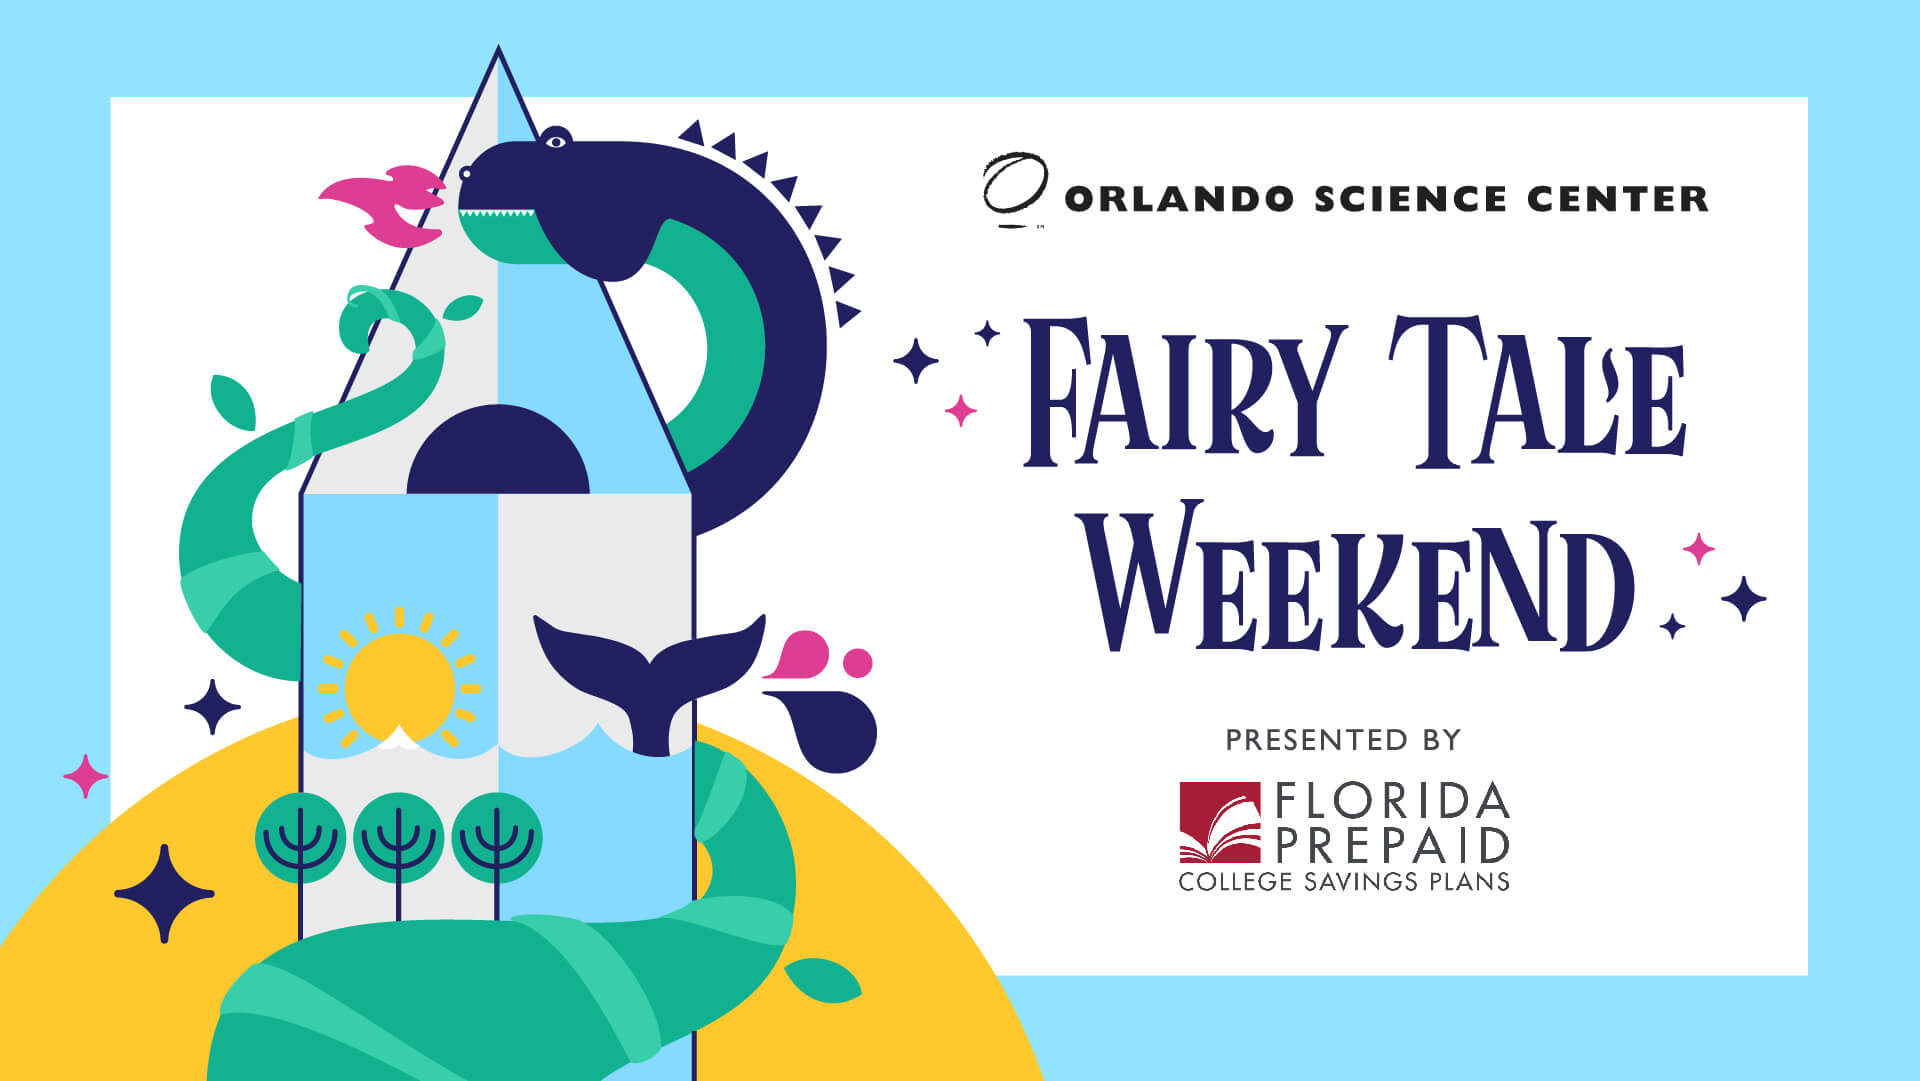 Fairy Tale Weekend - February 8-9